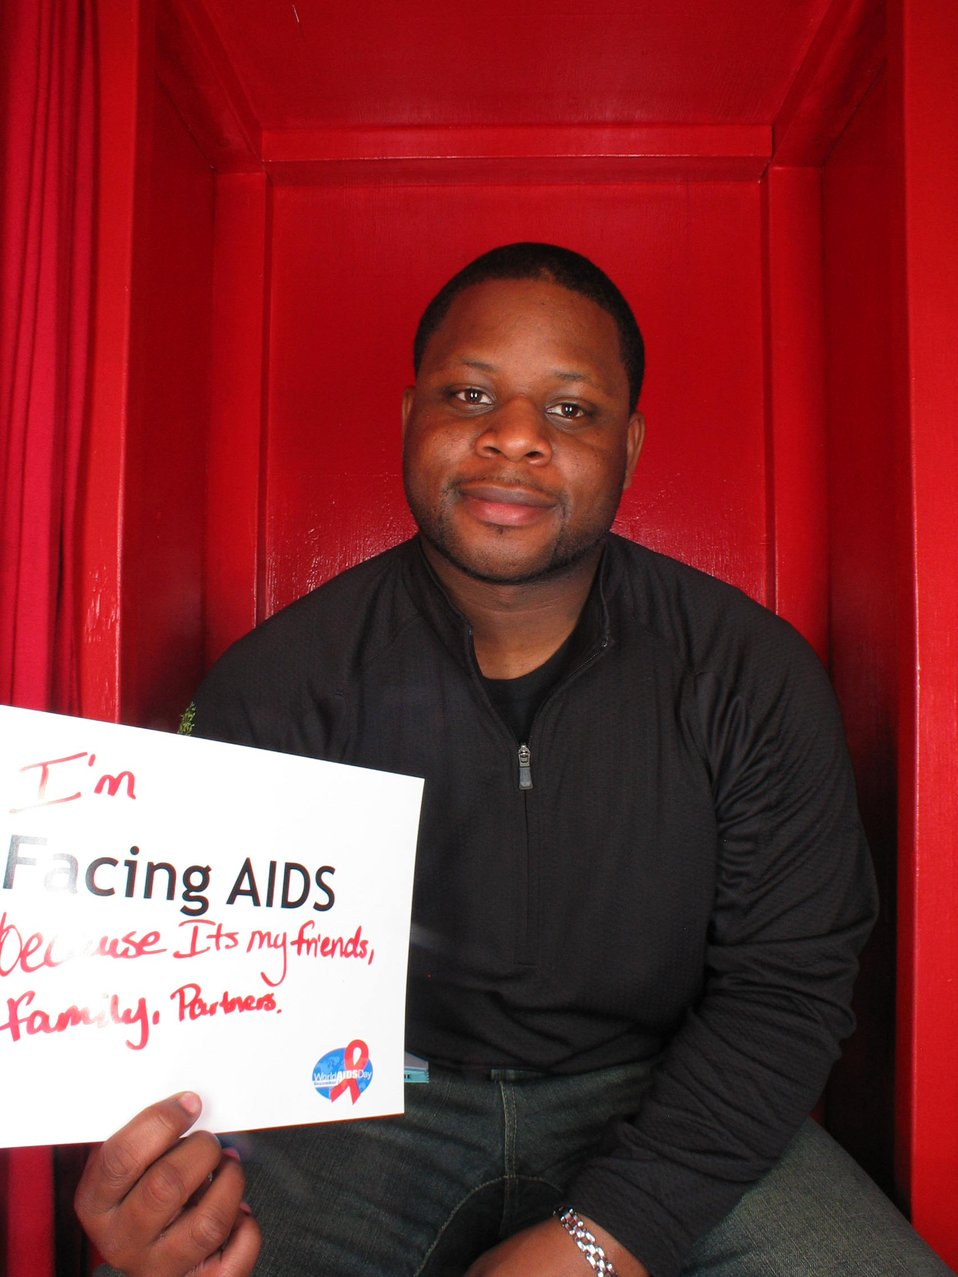 I'm Facing AIDS because its my friends, family and partner